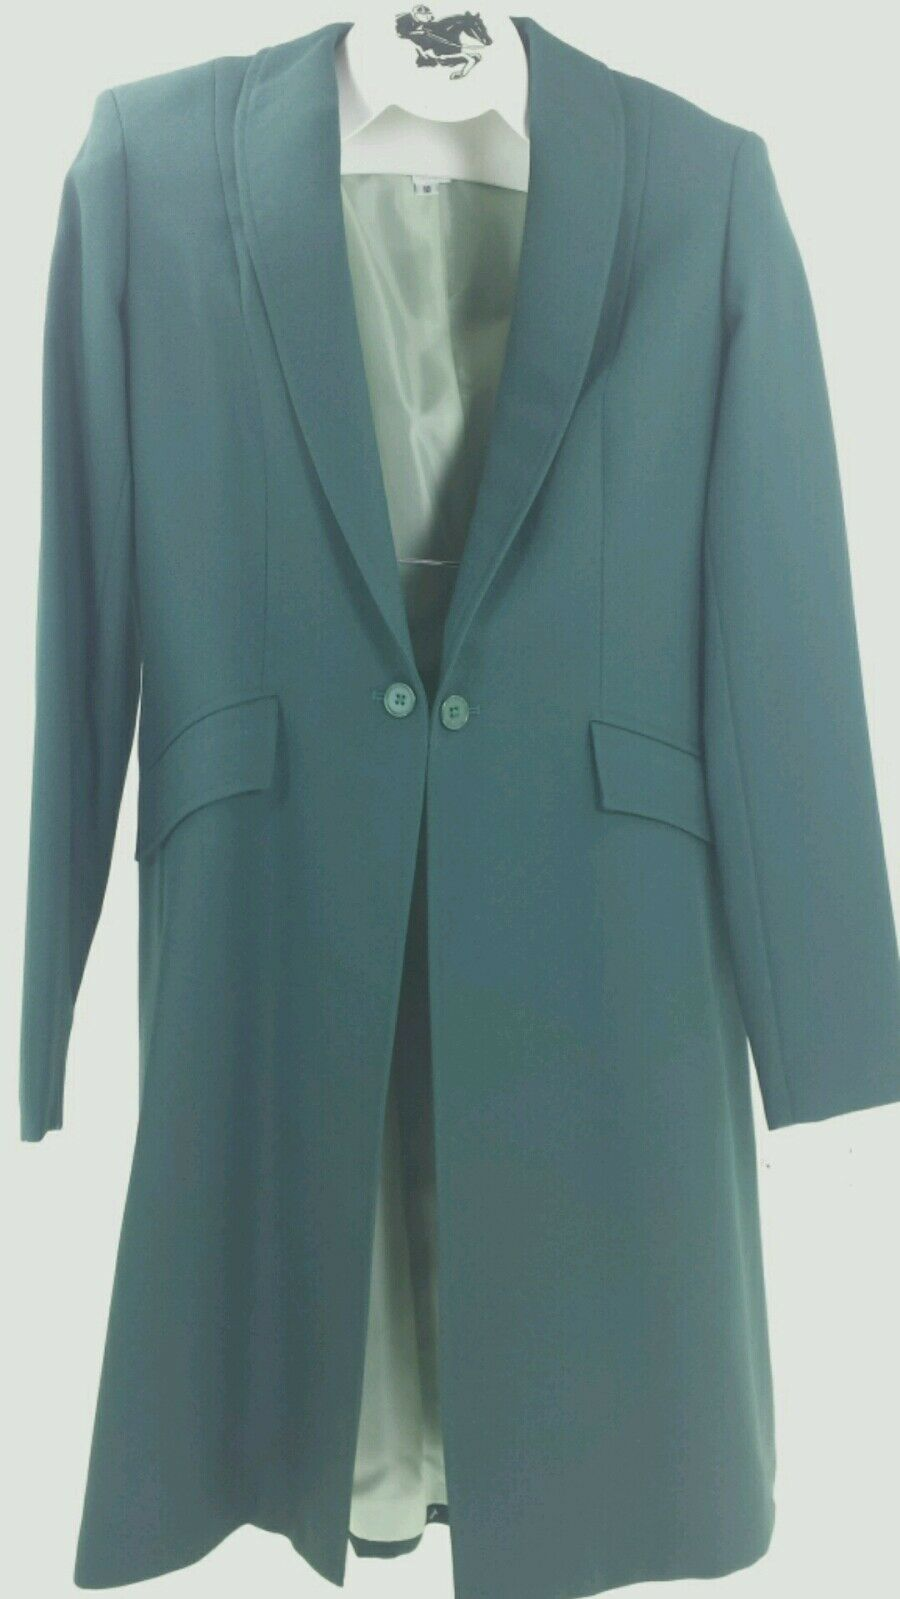 Reed Hill Saddleseat Day Coat HUNTER GREEN Crepe Polyester 16 USA